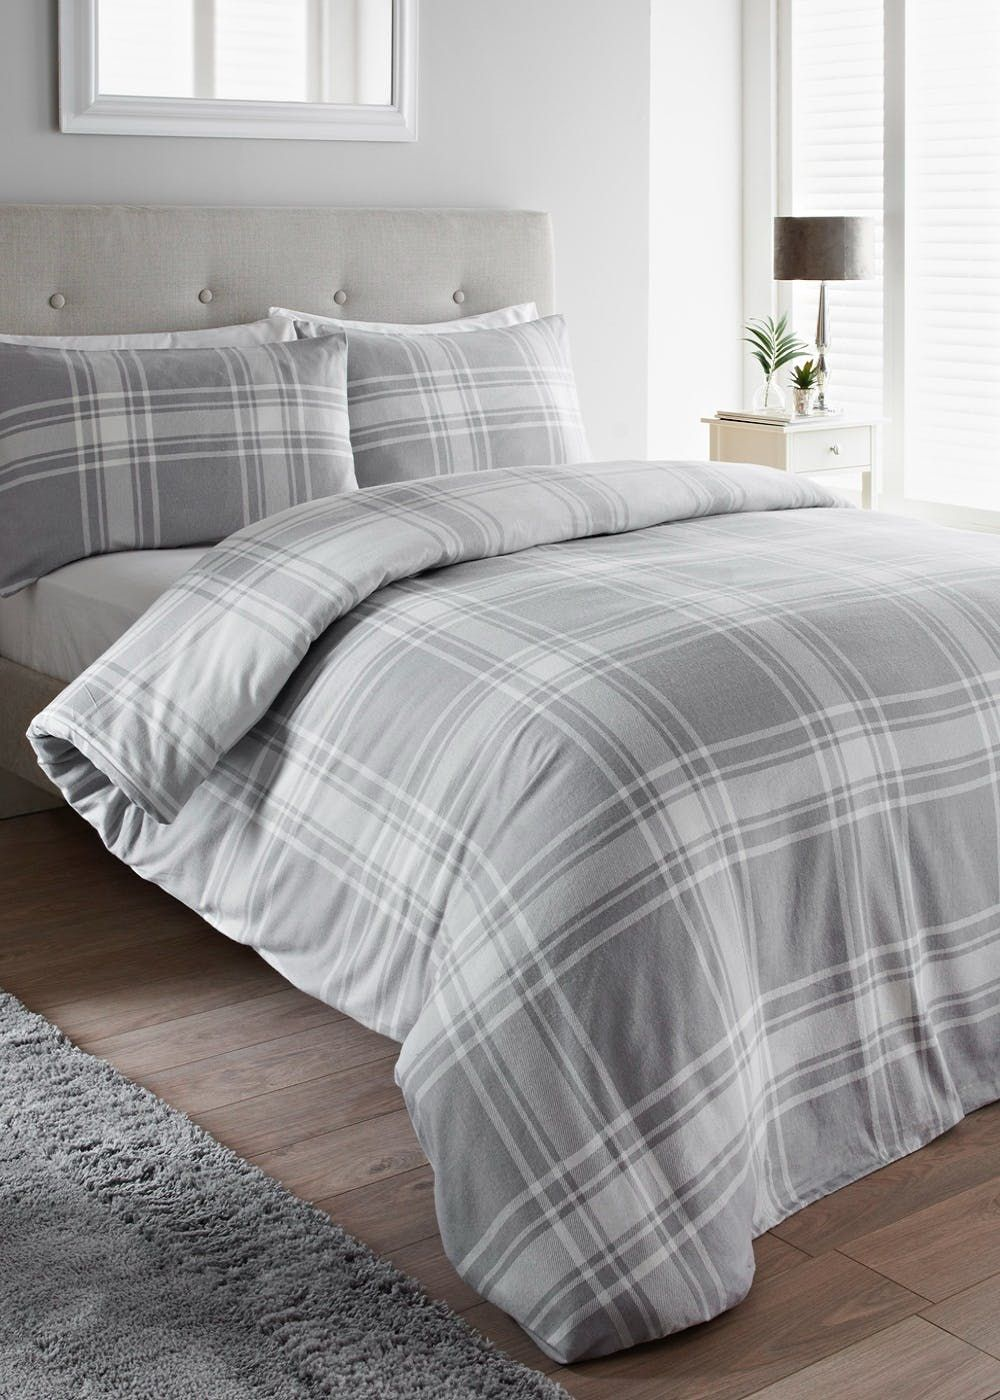 100 Brushed Cotton Check Duvet Cover Gray Duvet Cover Duvet